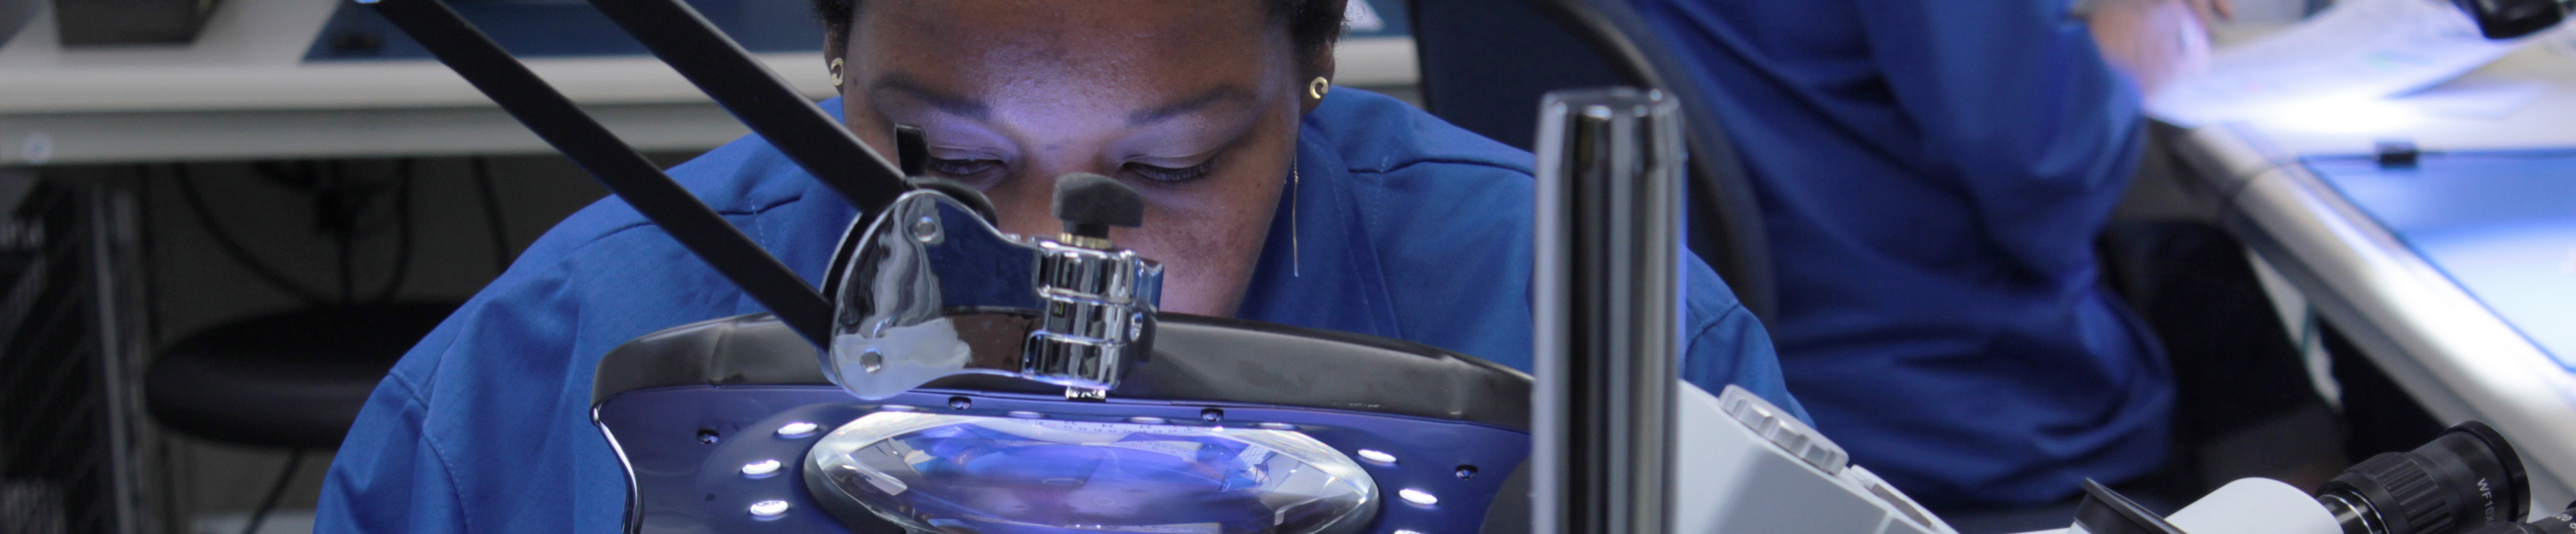 Osela employee working on Lasers for Machine vision and Bioinstrumentation